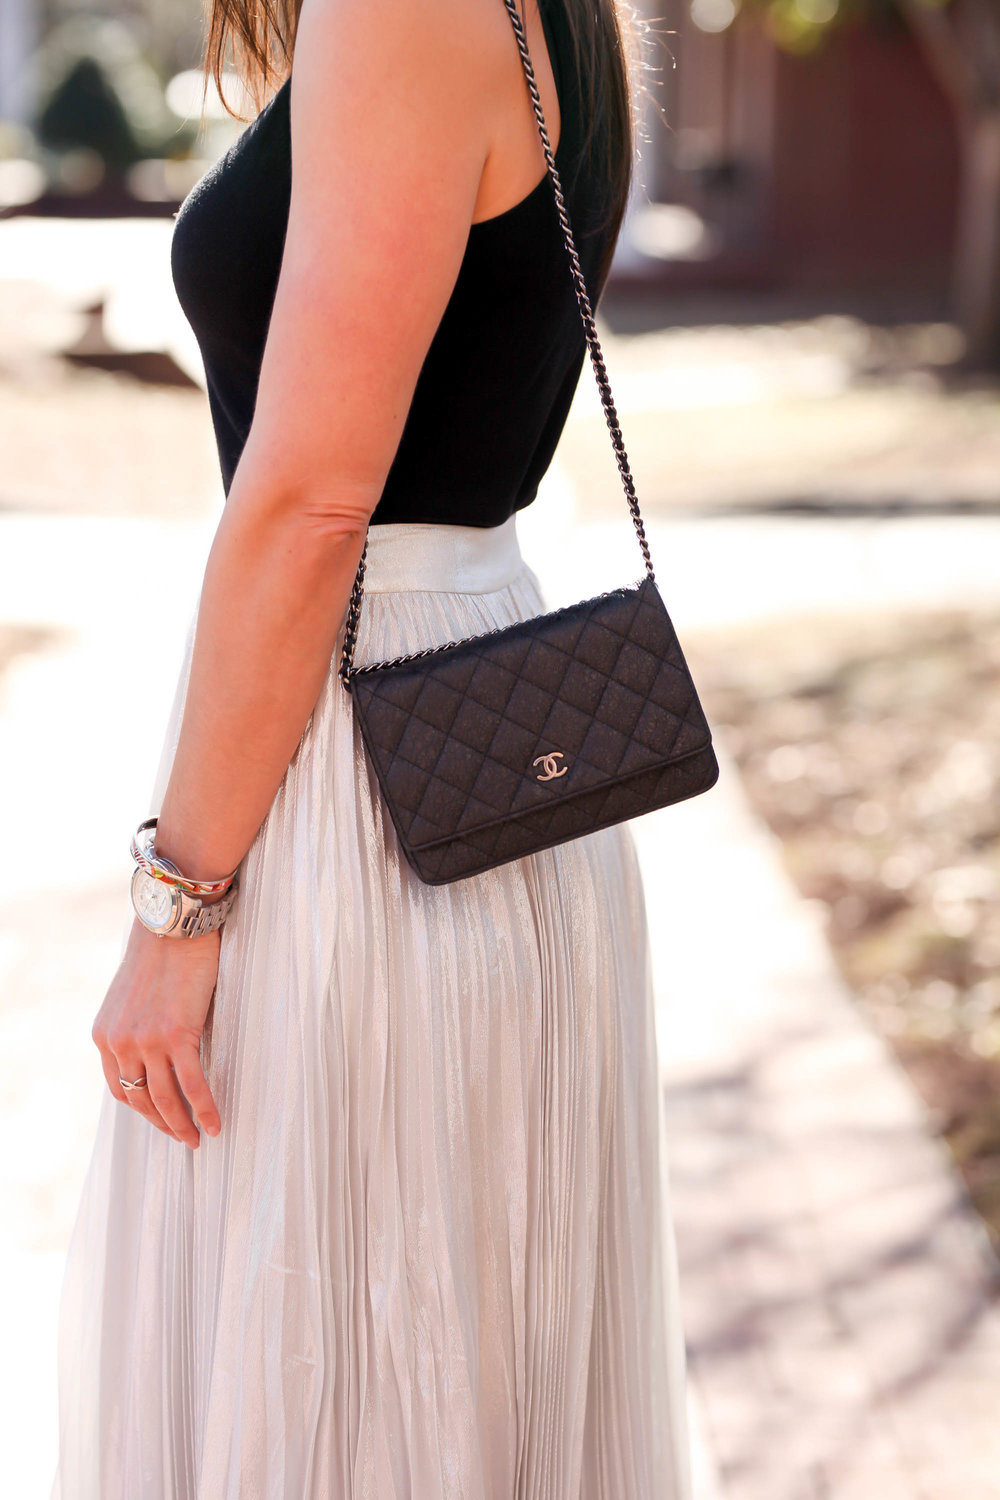 pleated-silver-skirt-classic-quilted-chanel-clutch-lauren-schwaiger-blog.jpg